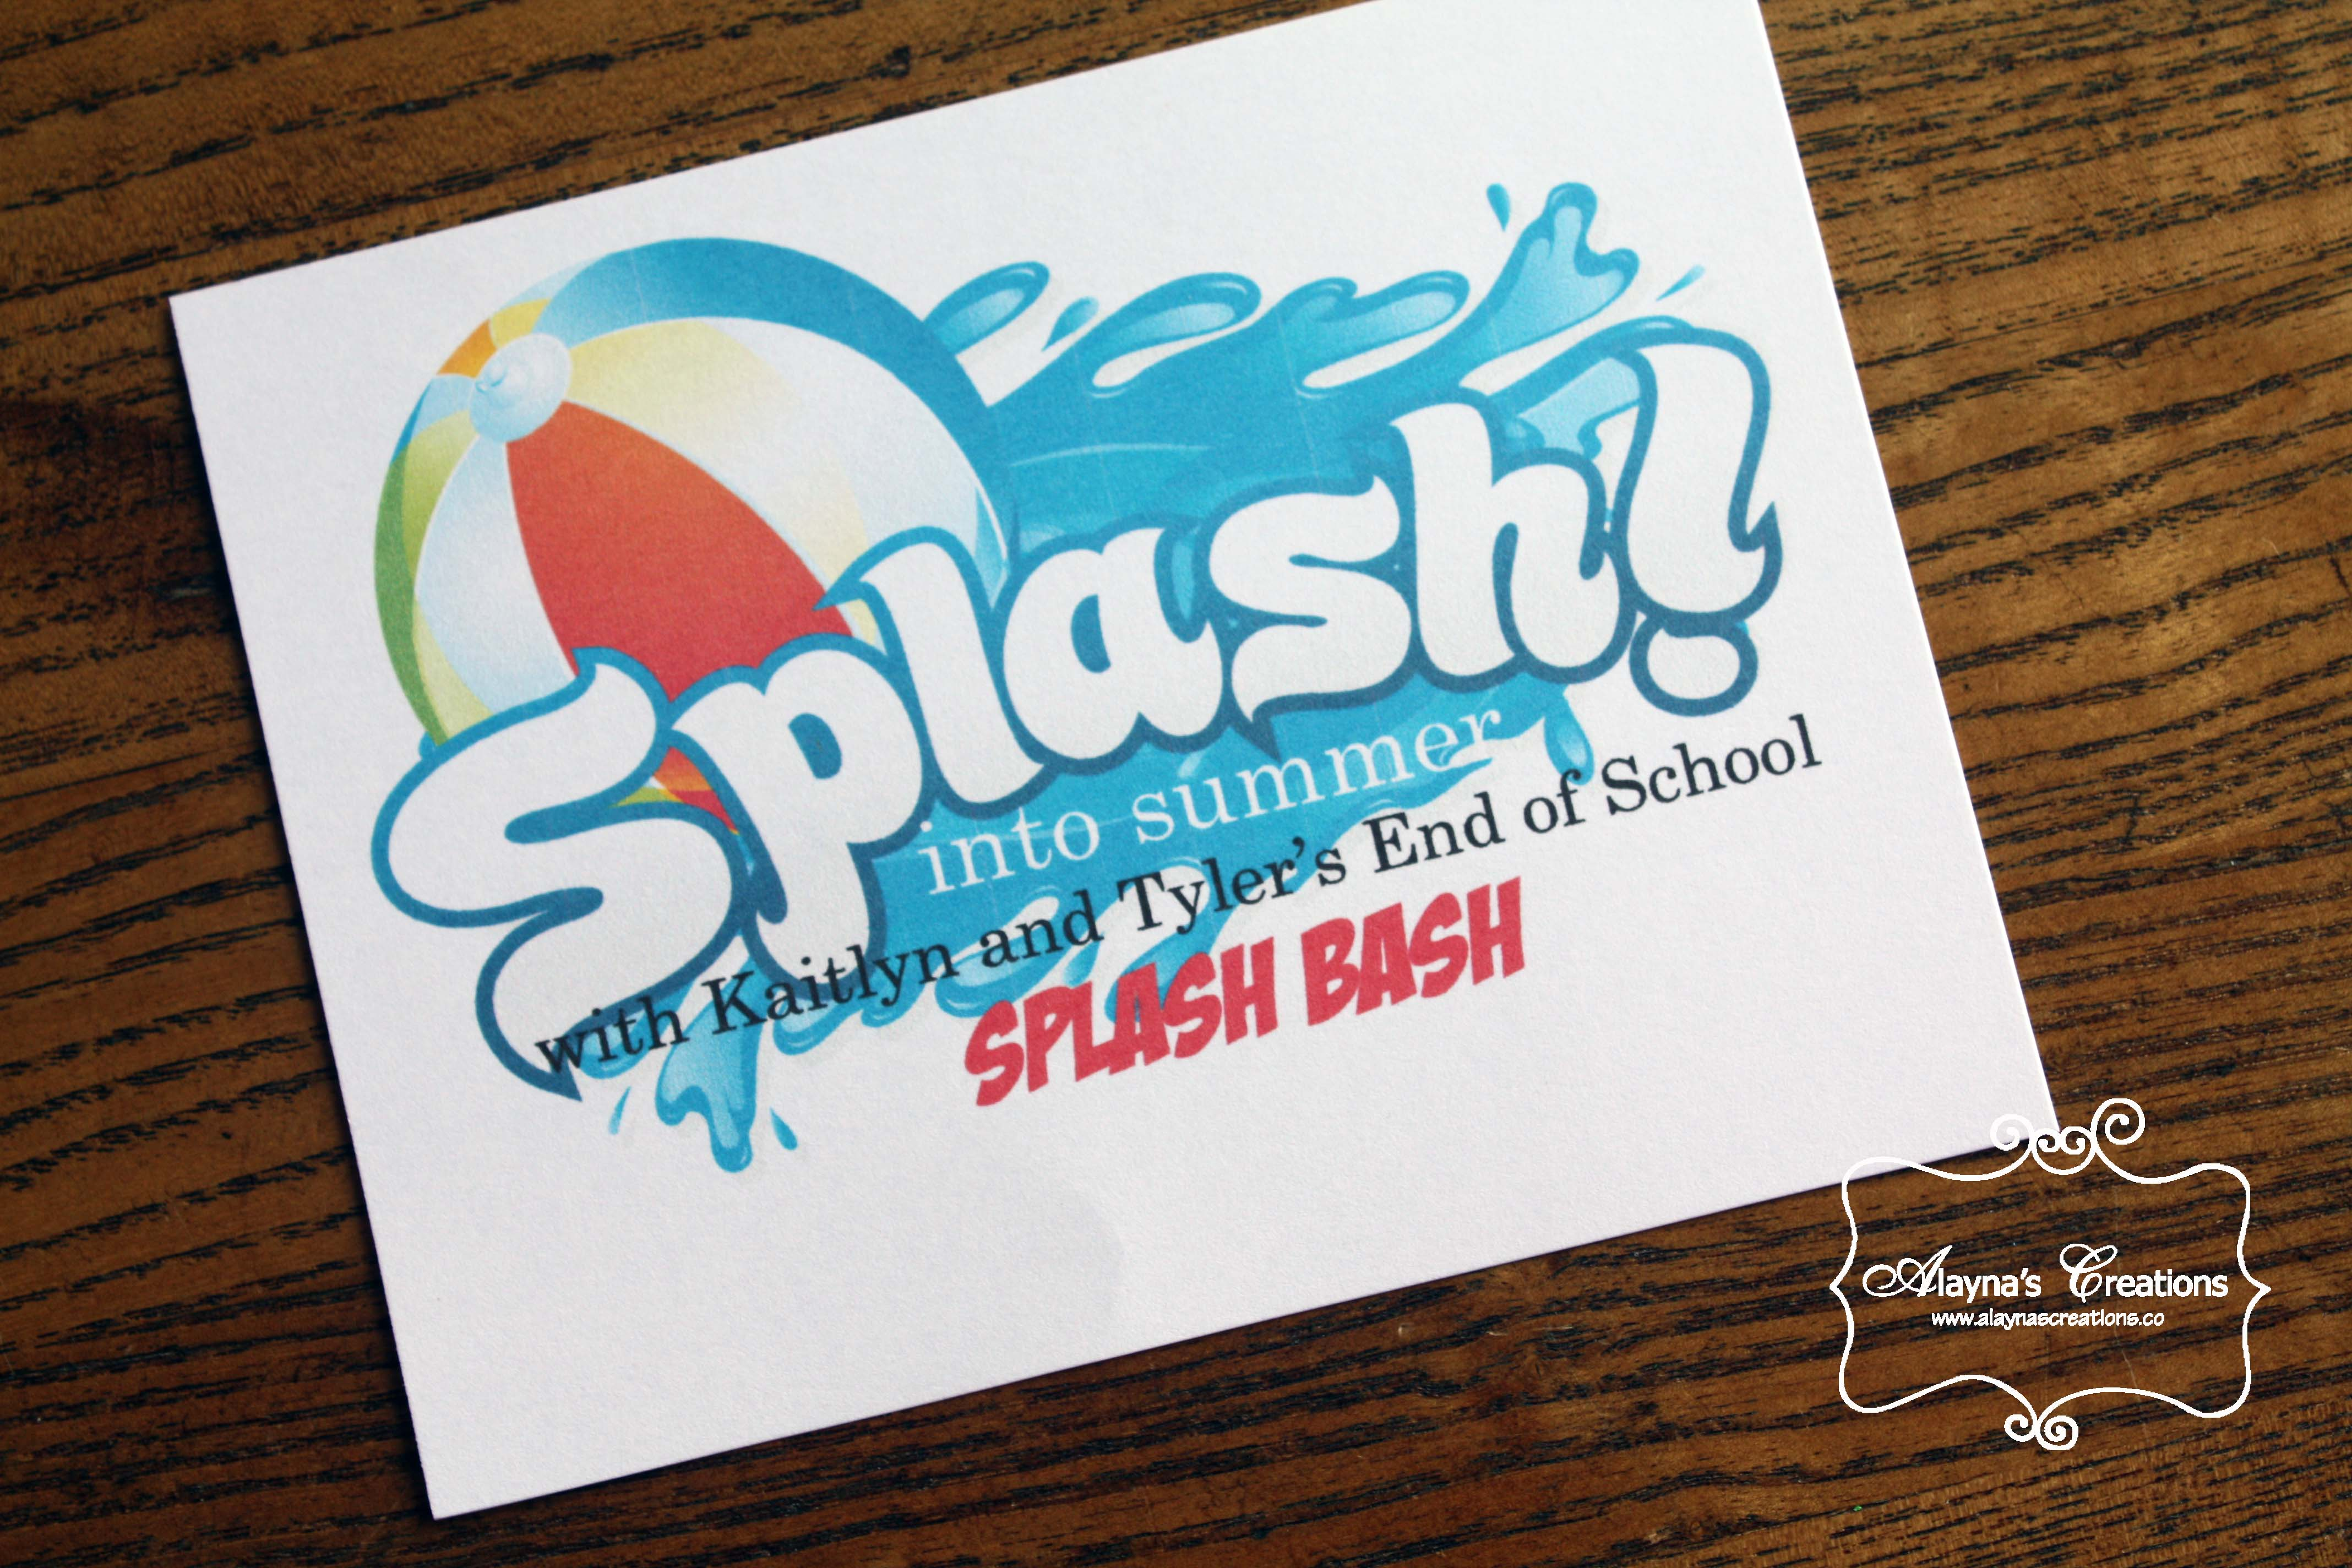 Summer Water Party Splash into Summer End of the School Year party invitation AlaynasCreations